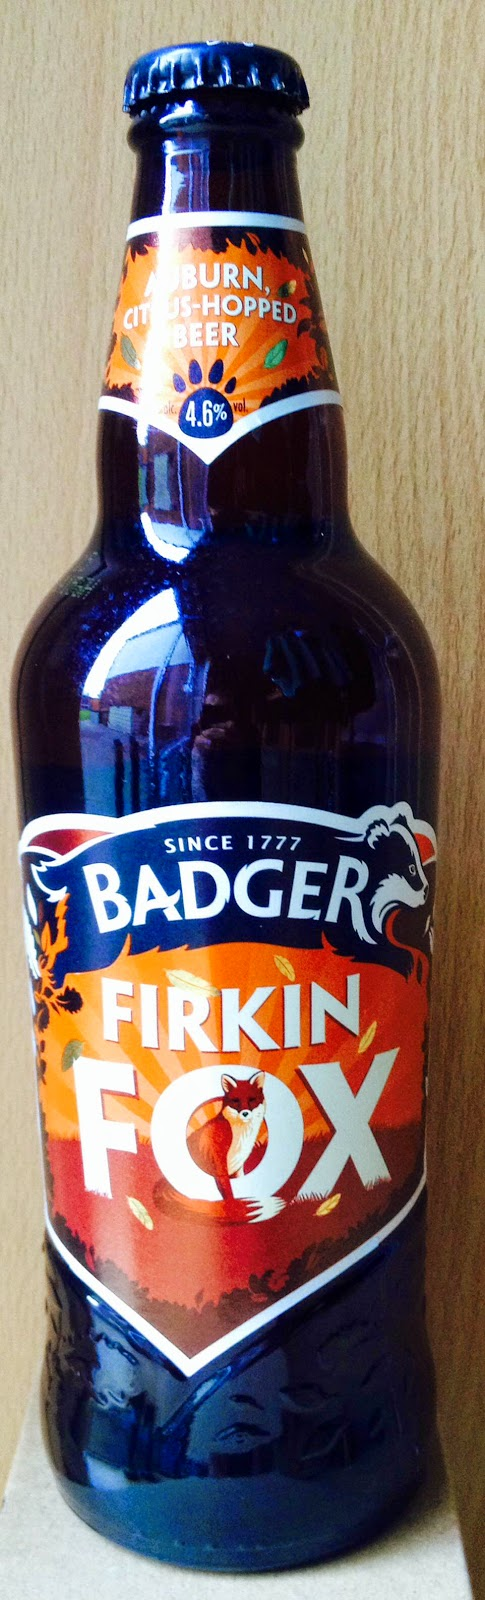 Firkin Fox (Badger)